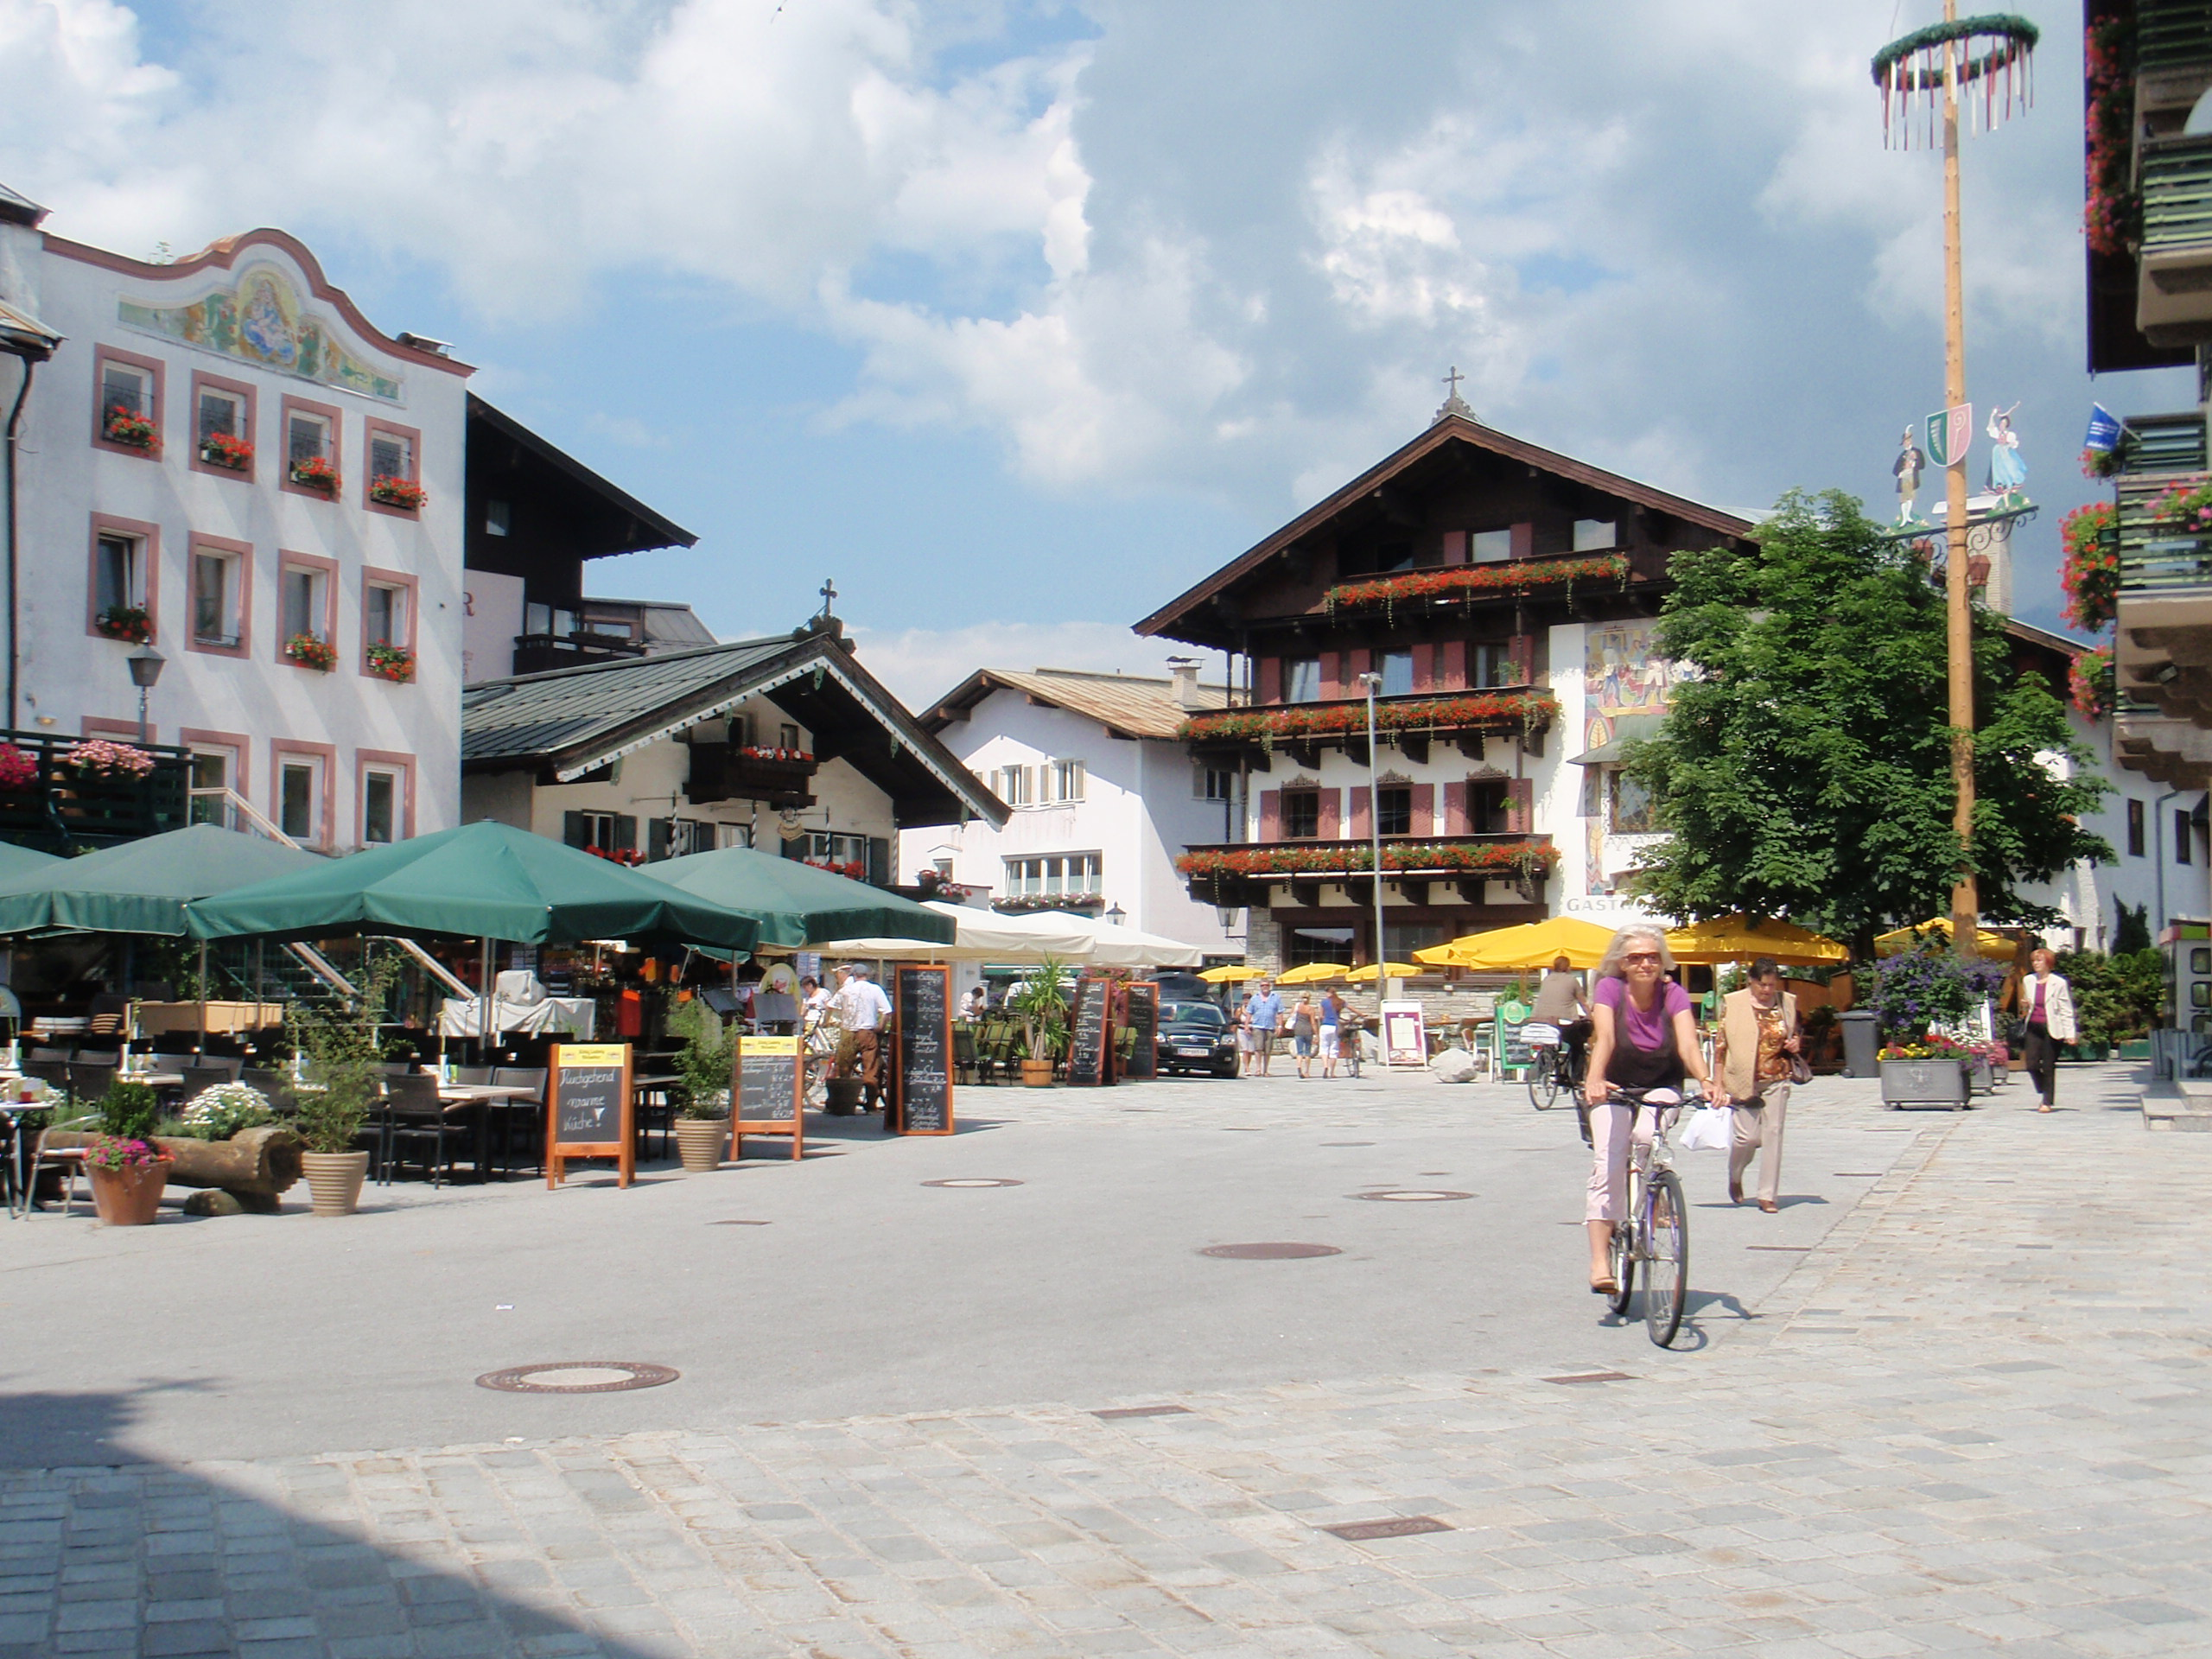 Hotel Park St Johann What Is The Definition Of Quaint St Johann Austria